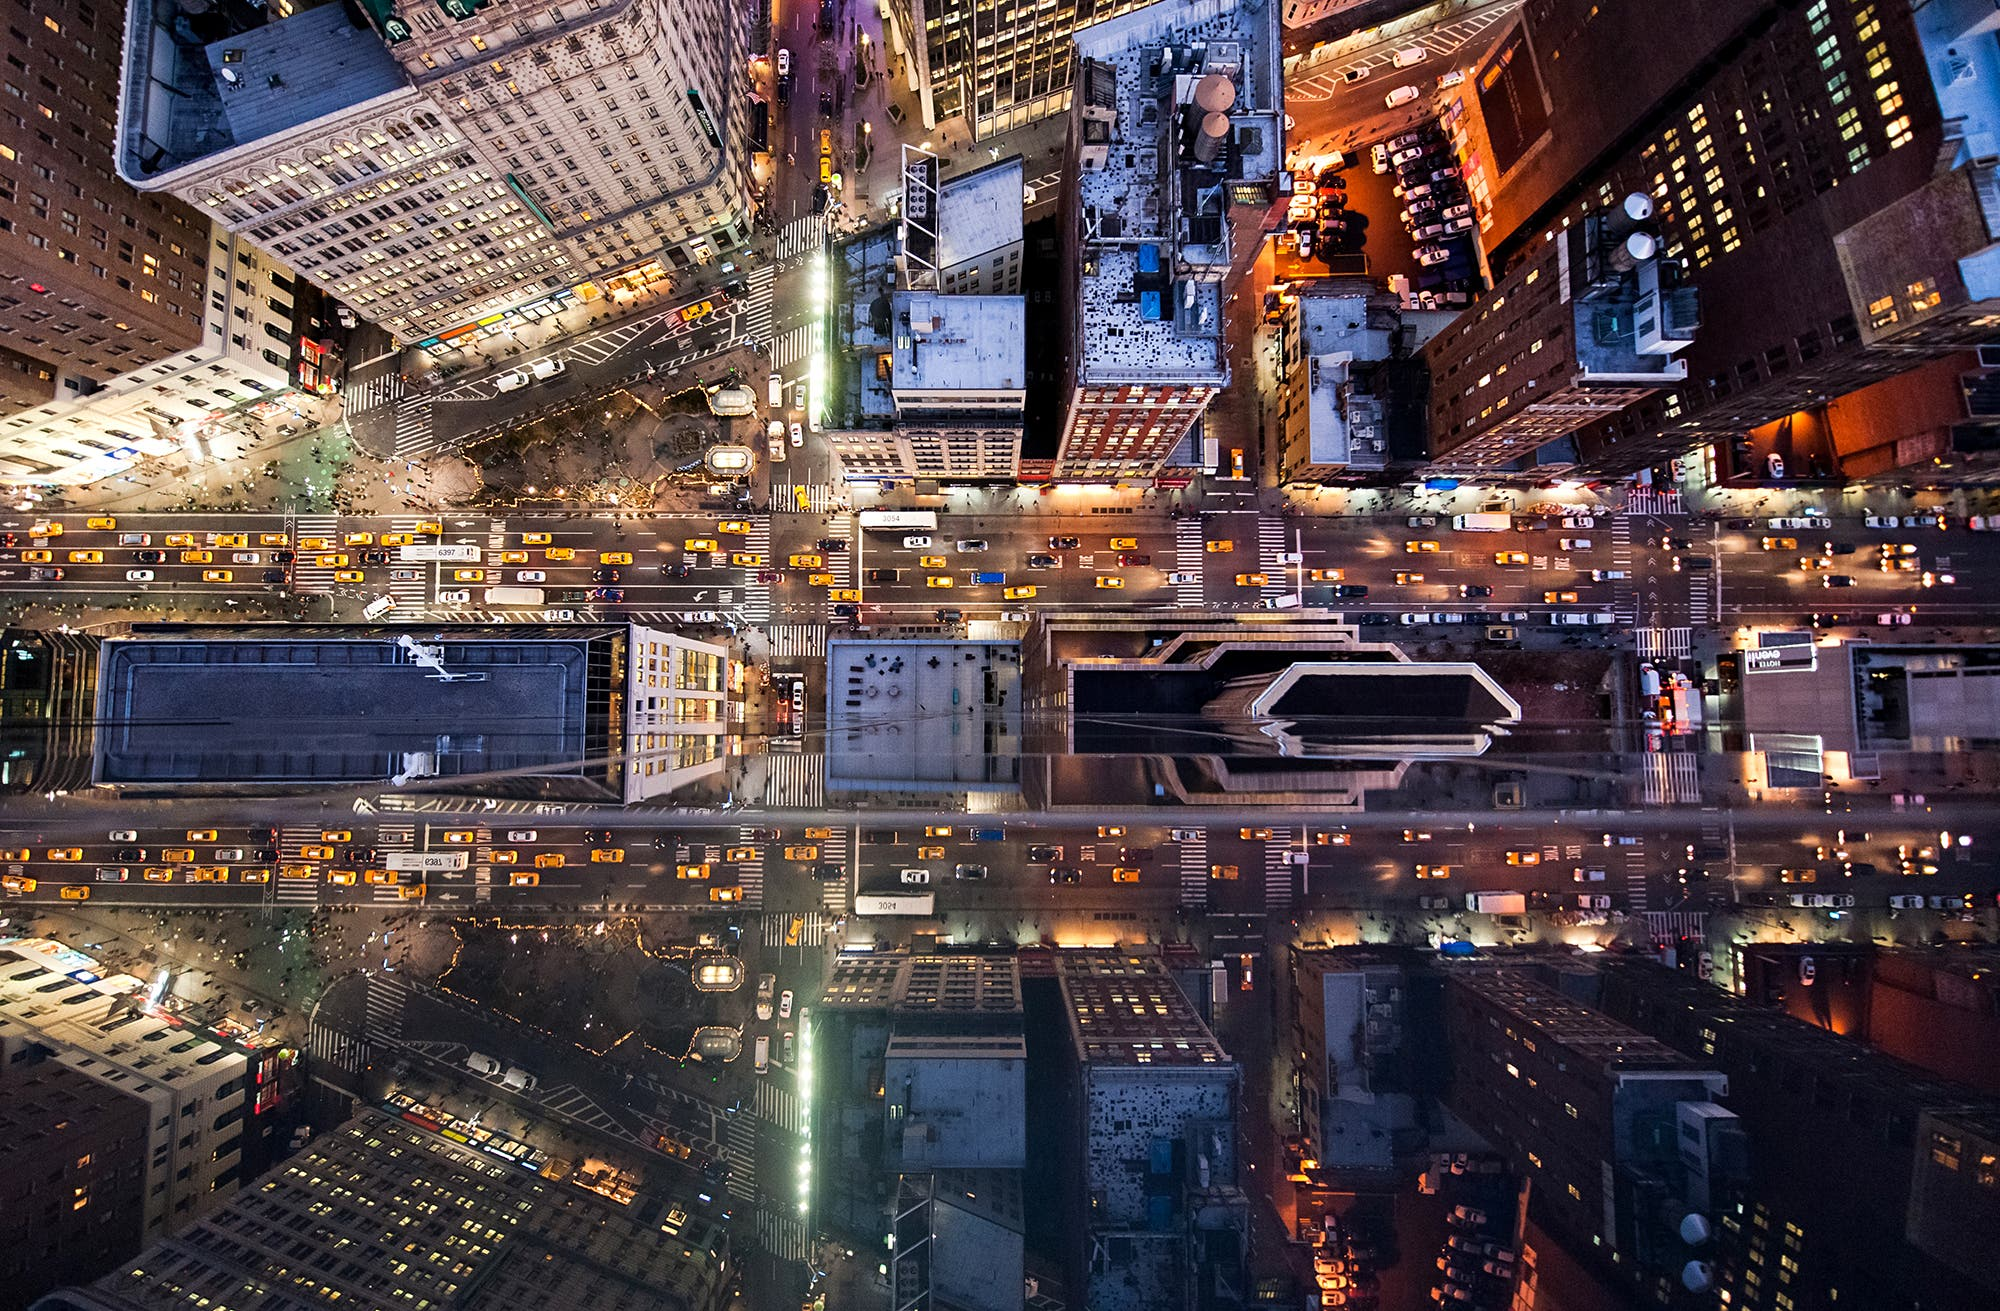 Intersection: Navid Baraty's Study of Urban Geometry